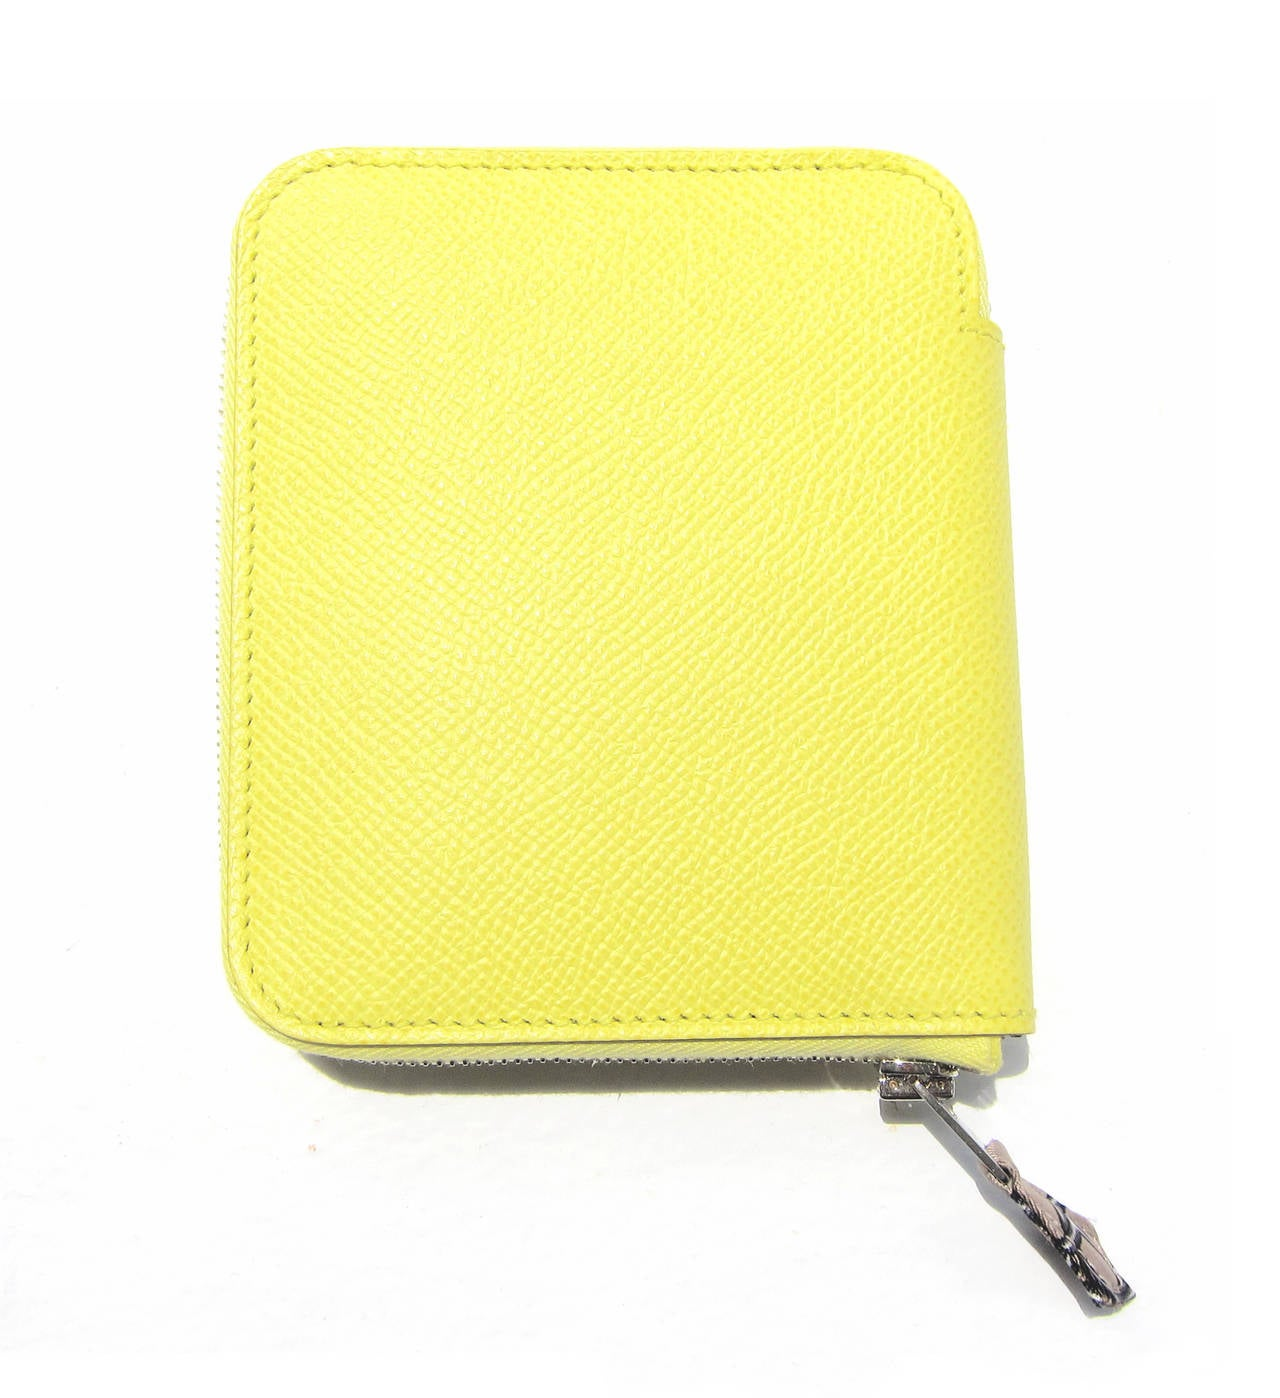 hermes kelly wallet yellow - photo #12